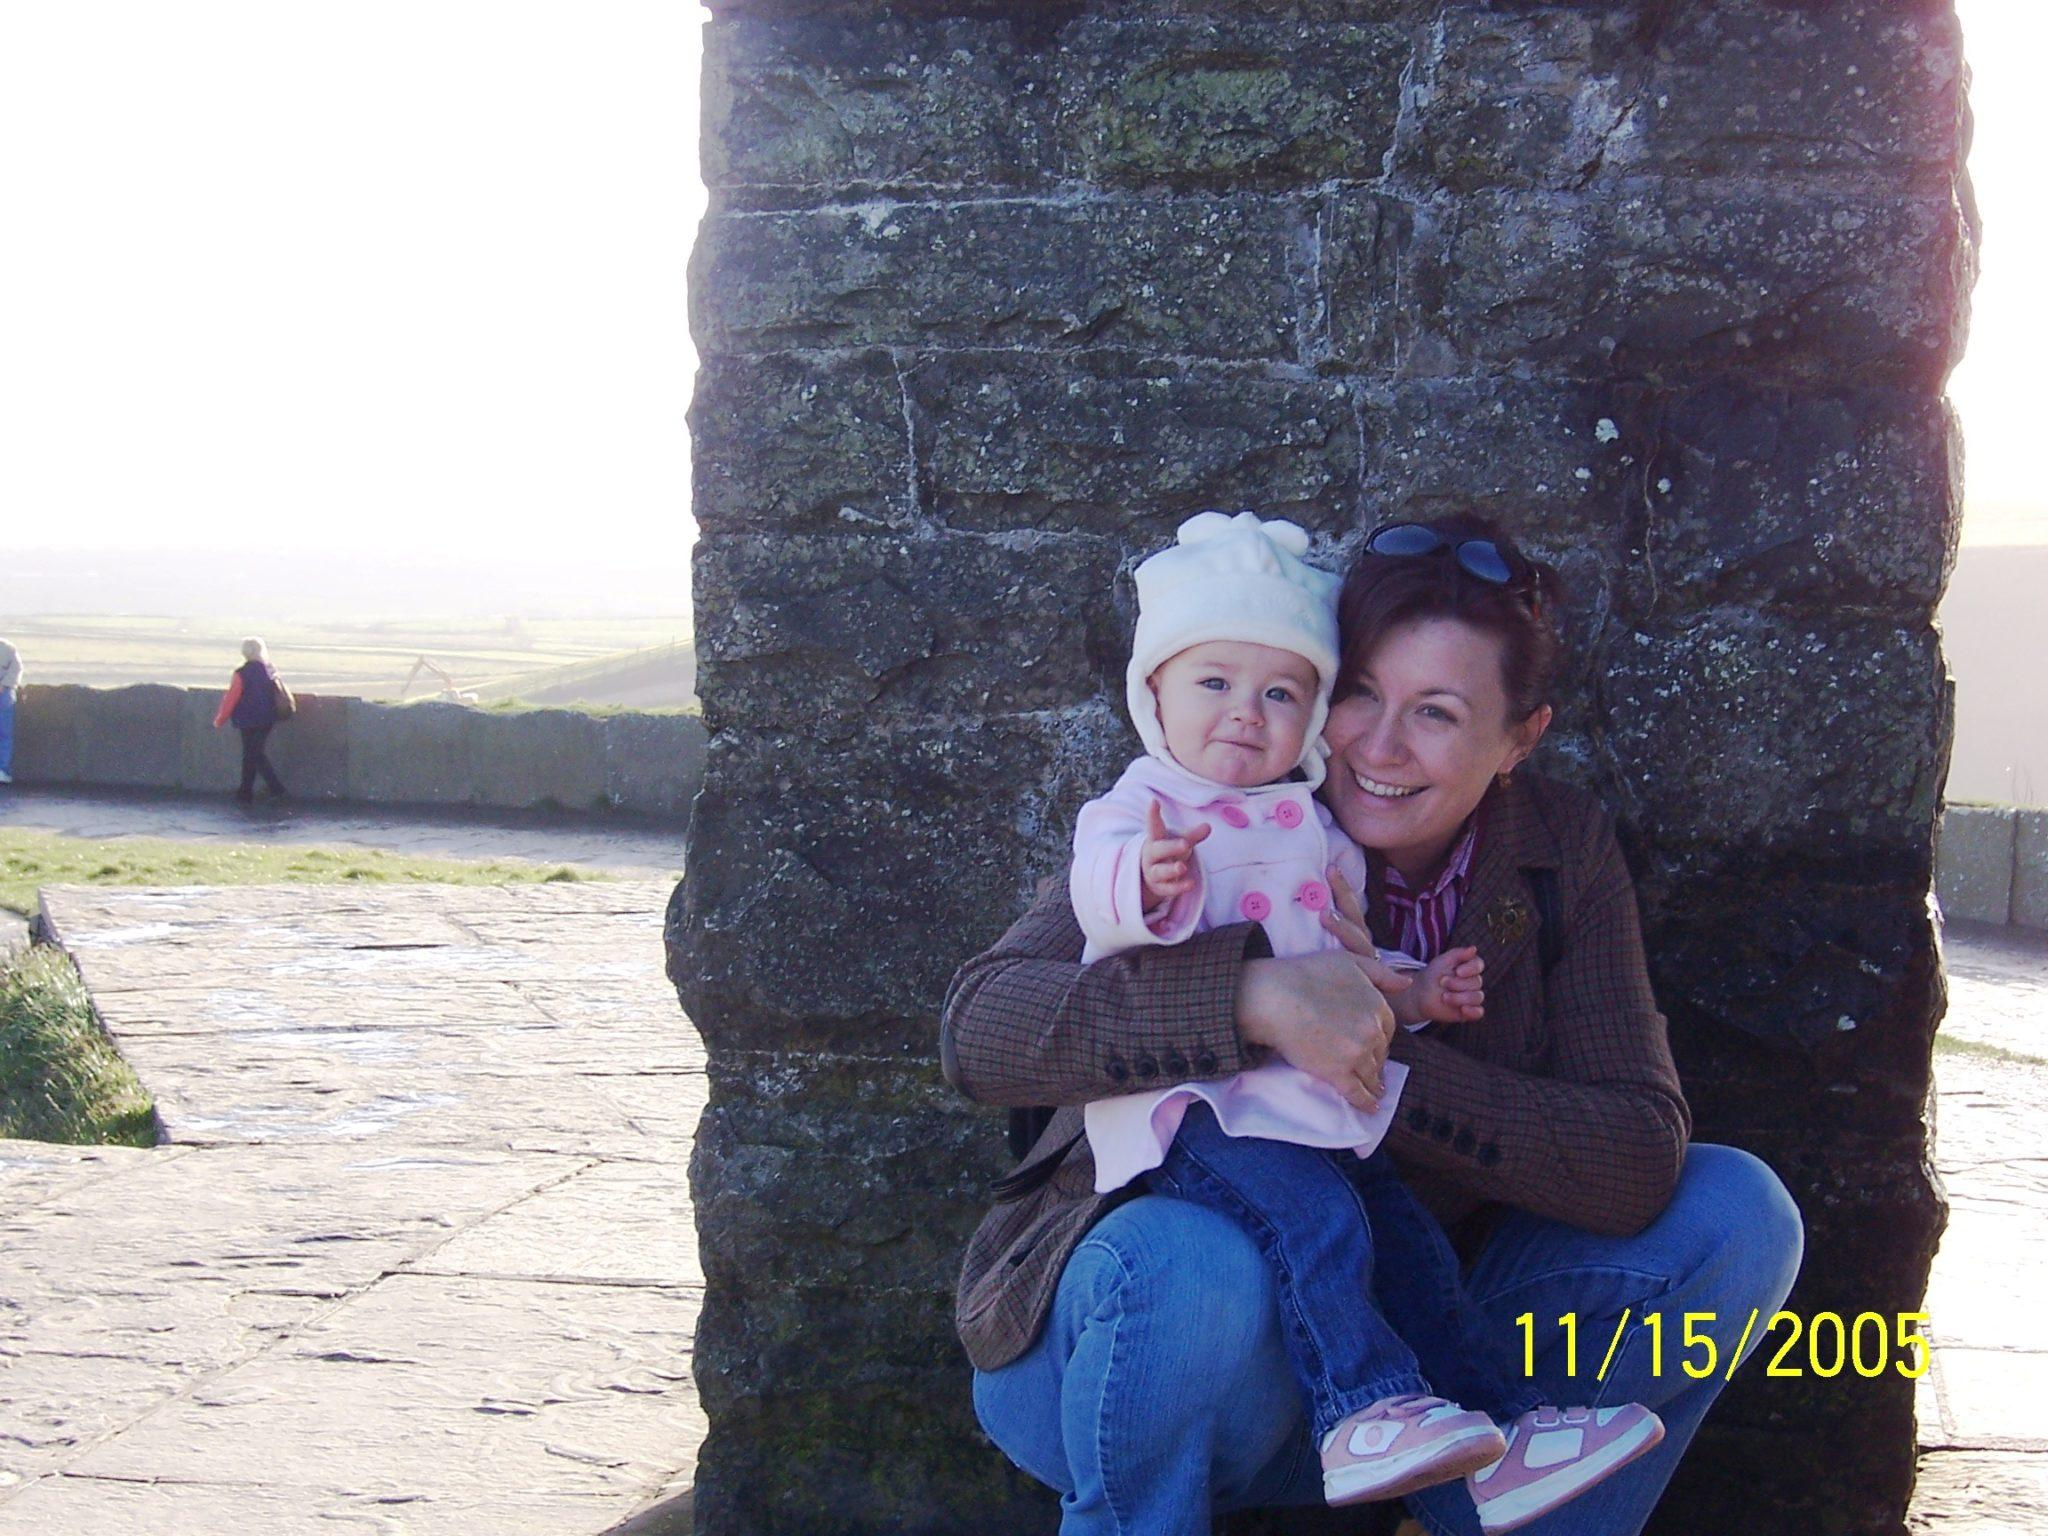 Steph Chastain on Couple vs. Family Travel in Ireland | Traveling in Ireland Podcast Episode 44